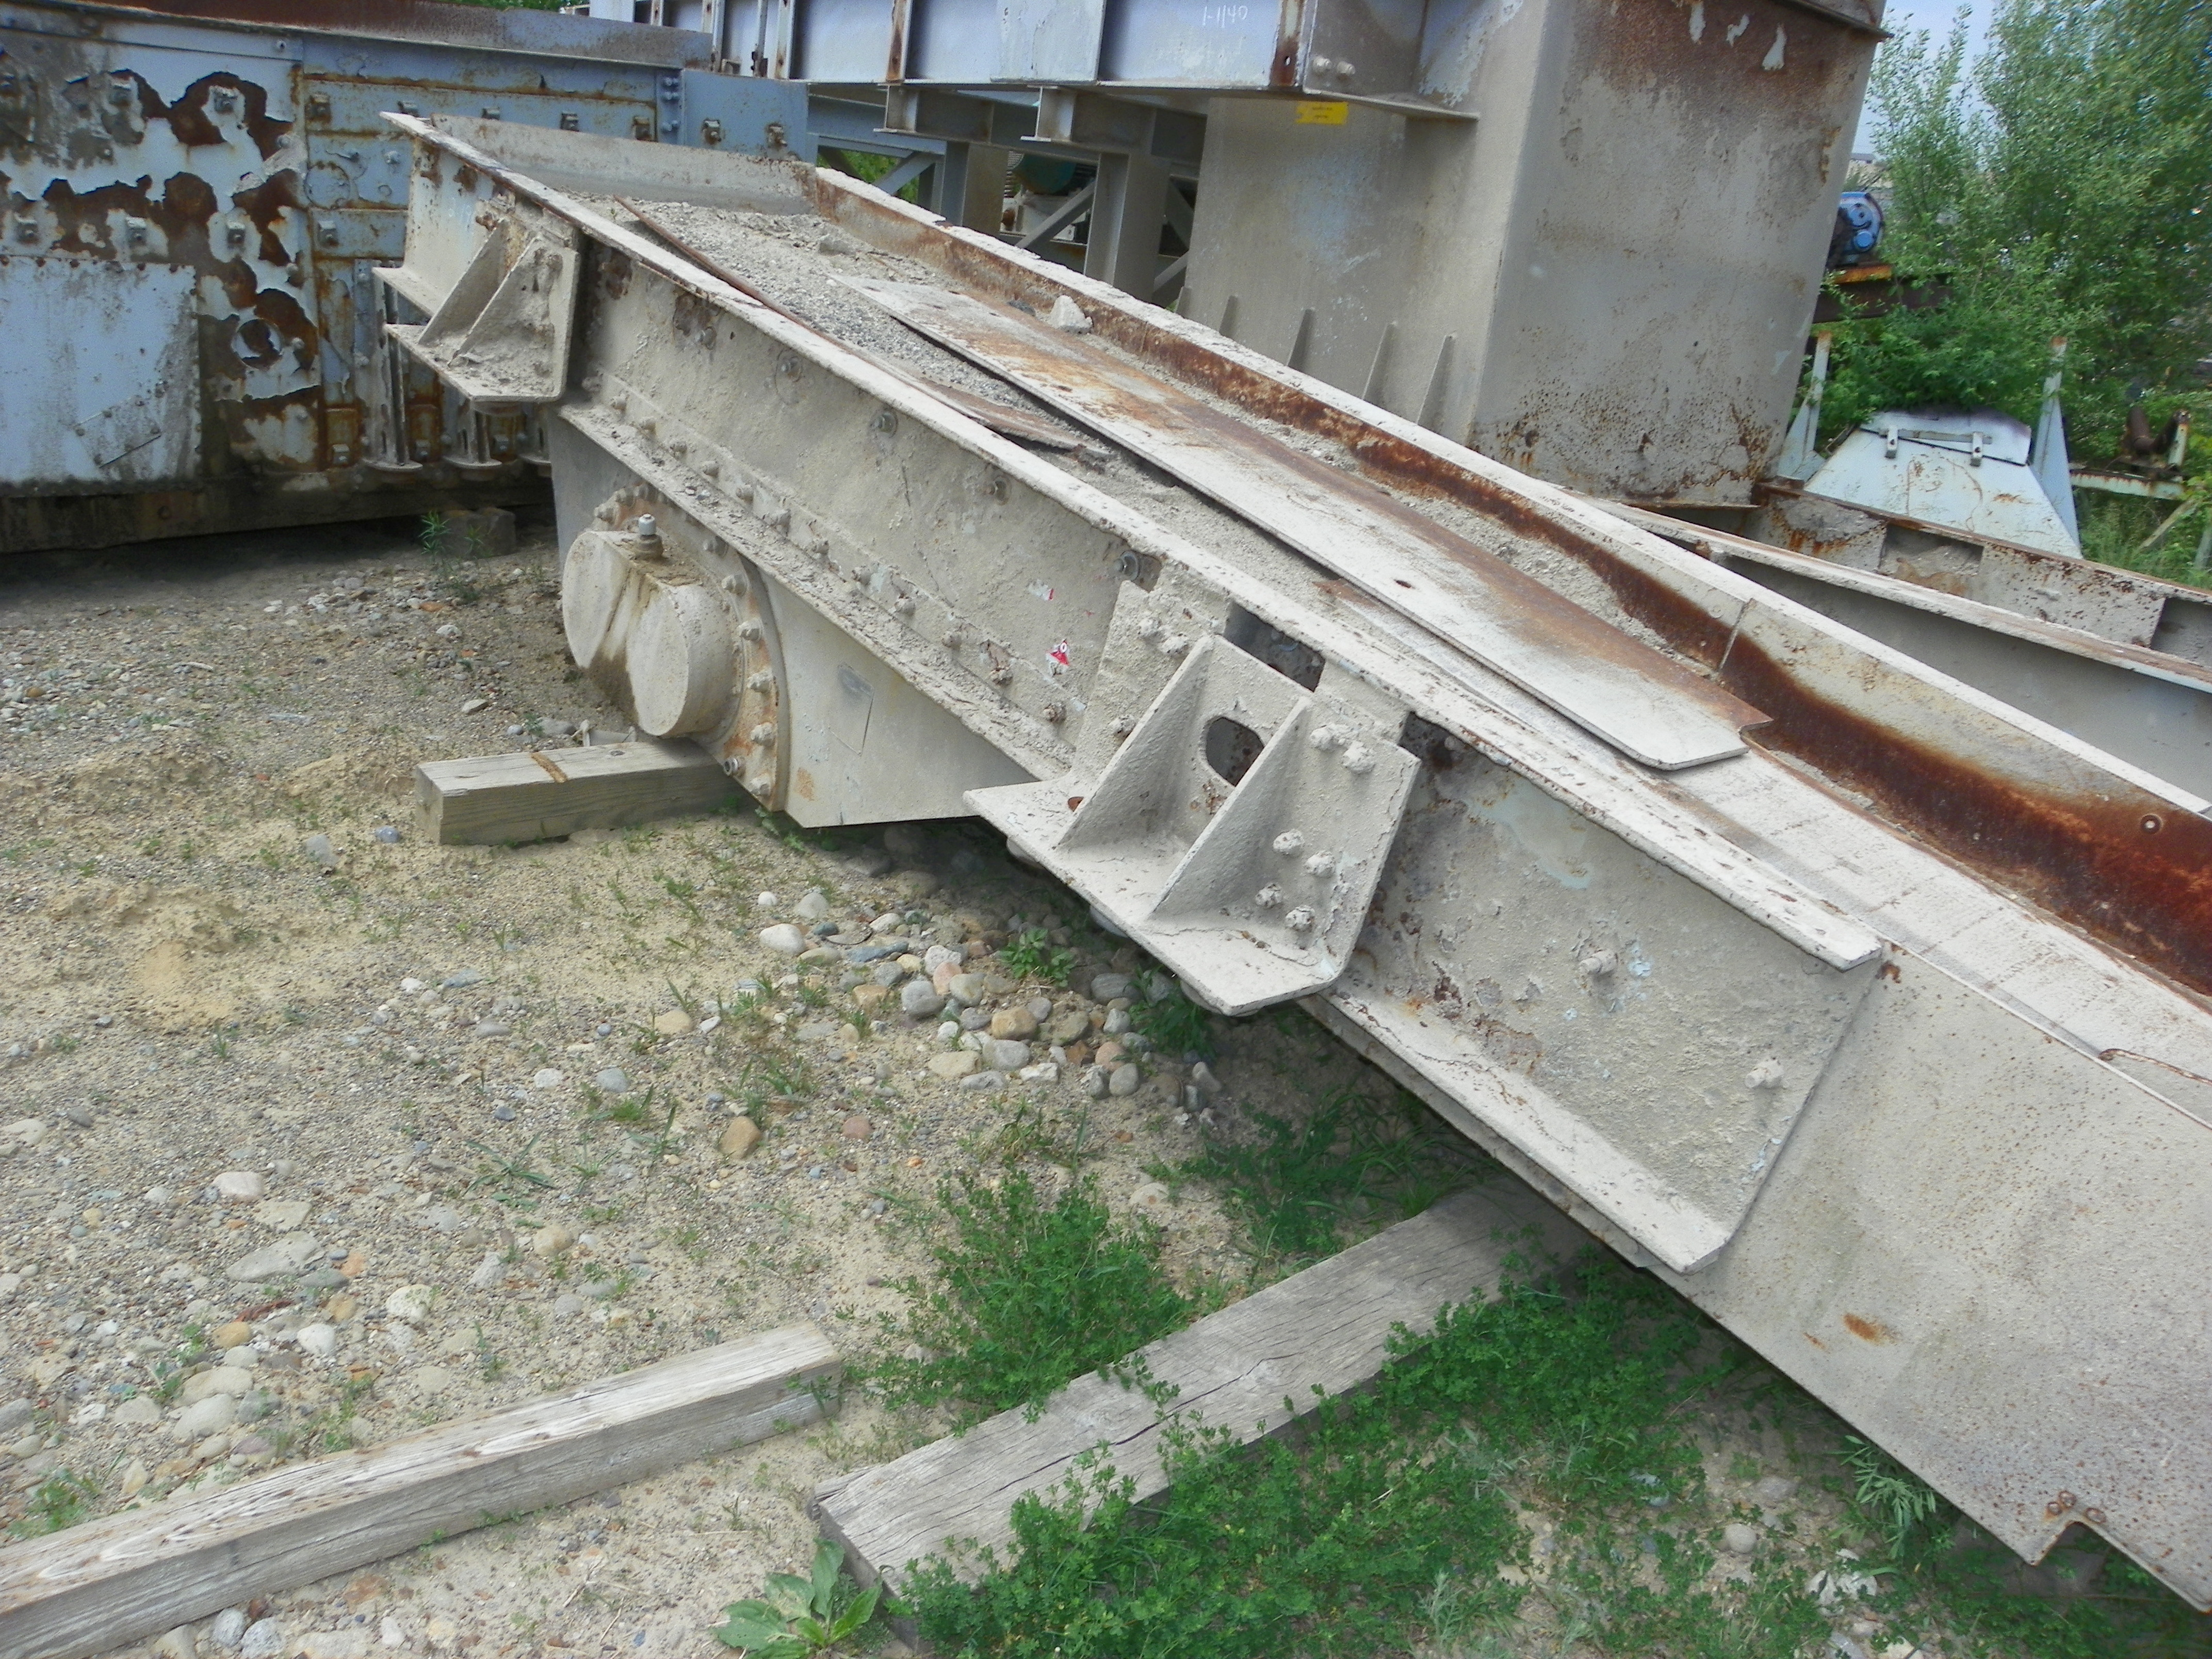 "CEDAR RAPIDS 52"" X 17' VIBRATING FEEDER WITH SUBSTRUCTURE -2"